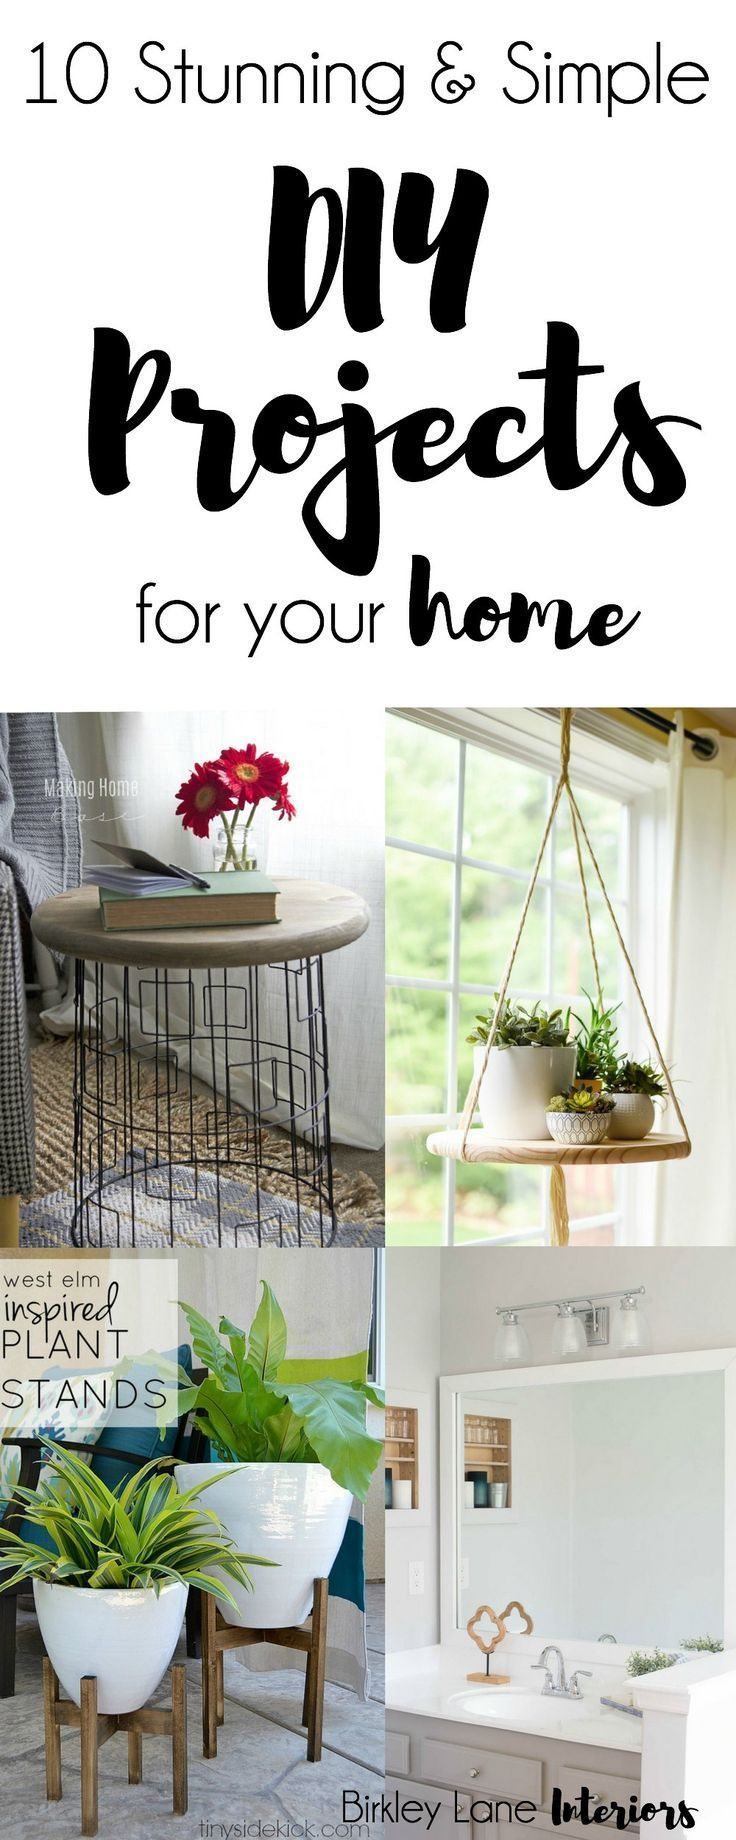 250 best home decor images on pinterest home diy and crafts